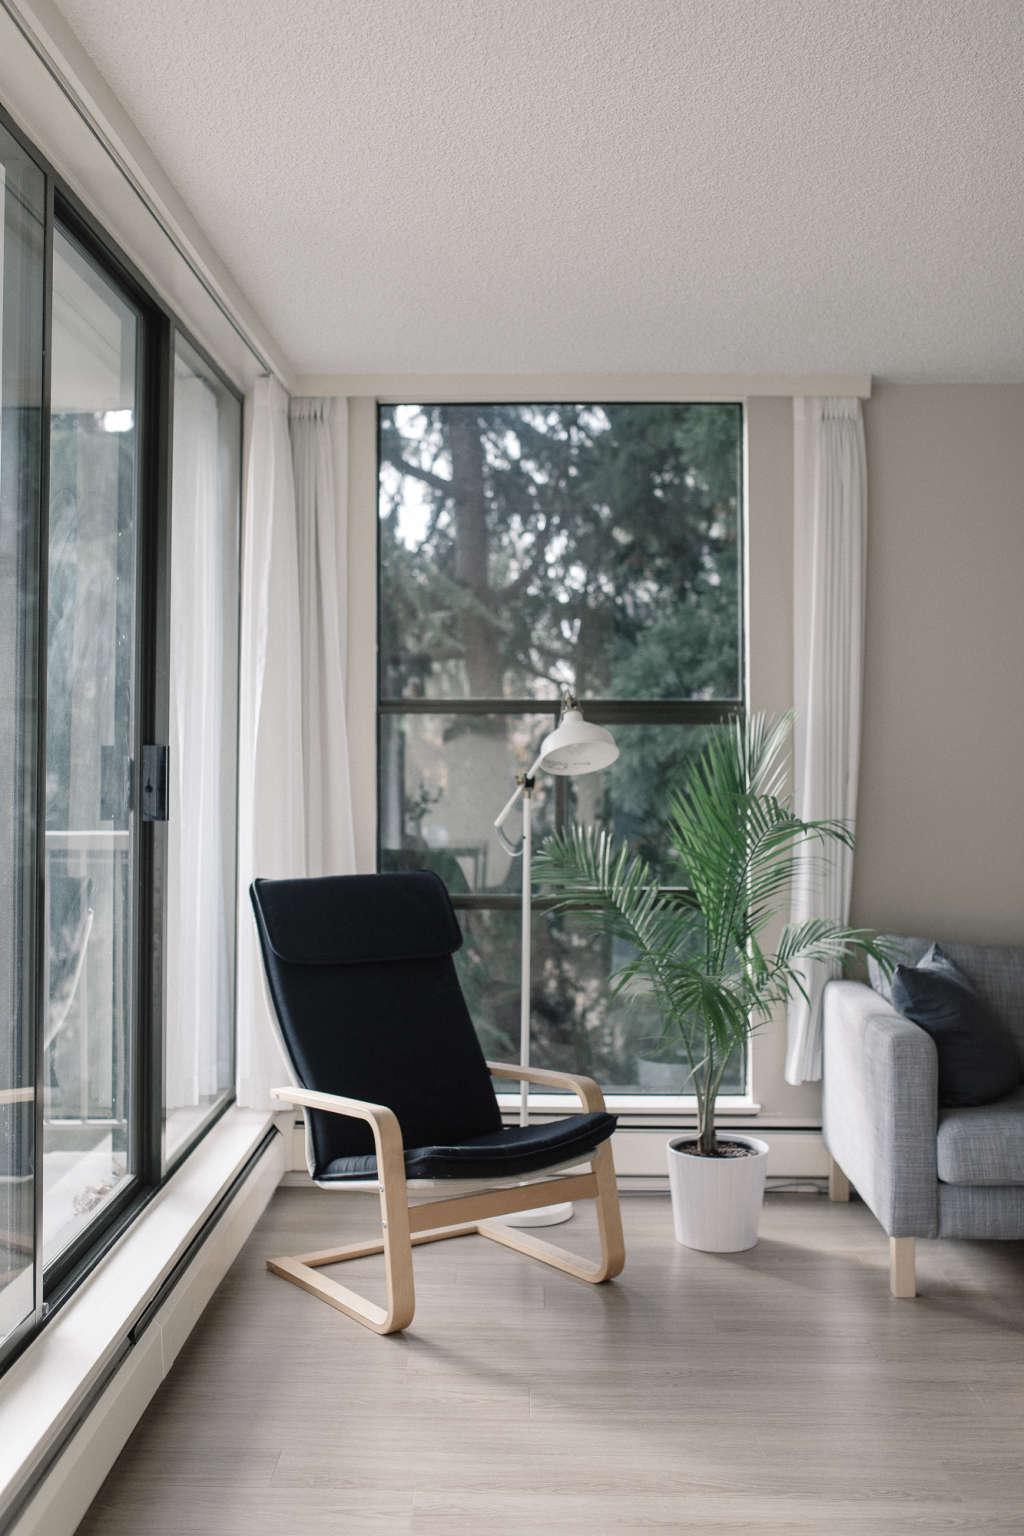 A scandinavian inspired small space in vancouver 9603a11b938d3bae4f08208846847a0d223a71d6 apartment therapy submissions